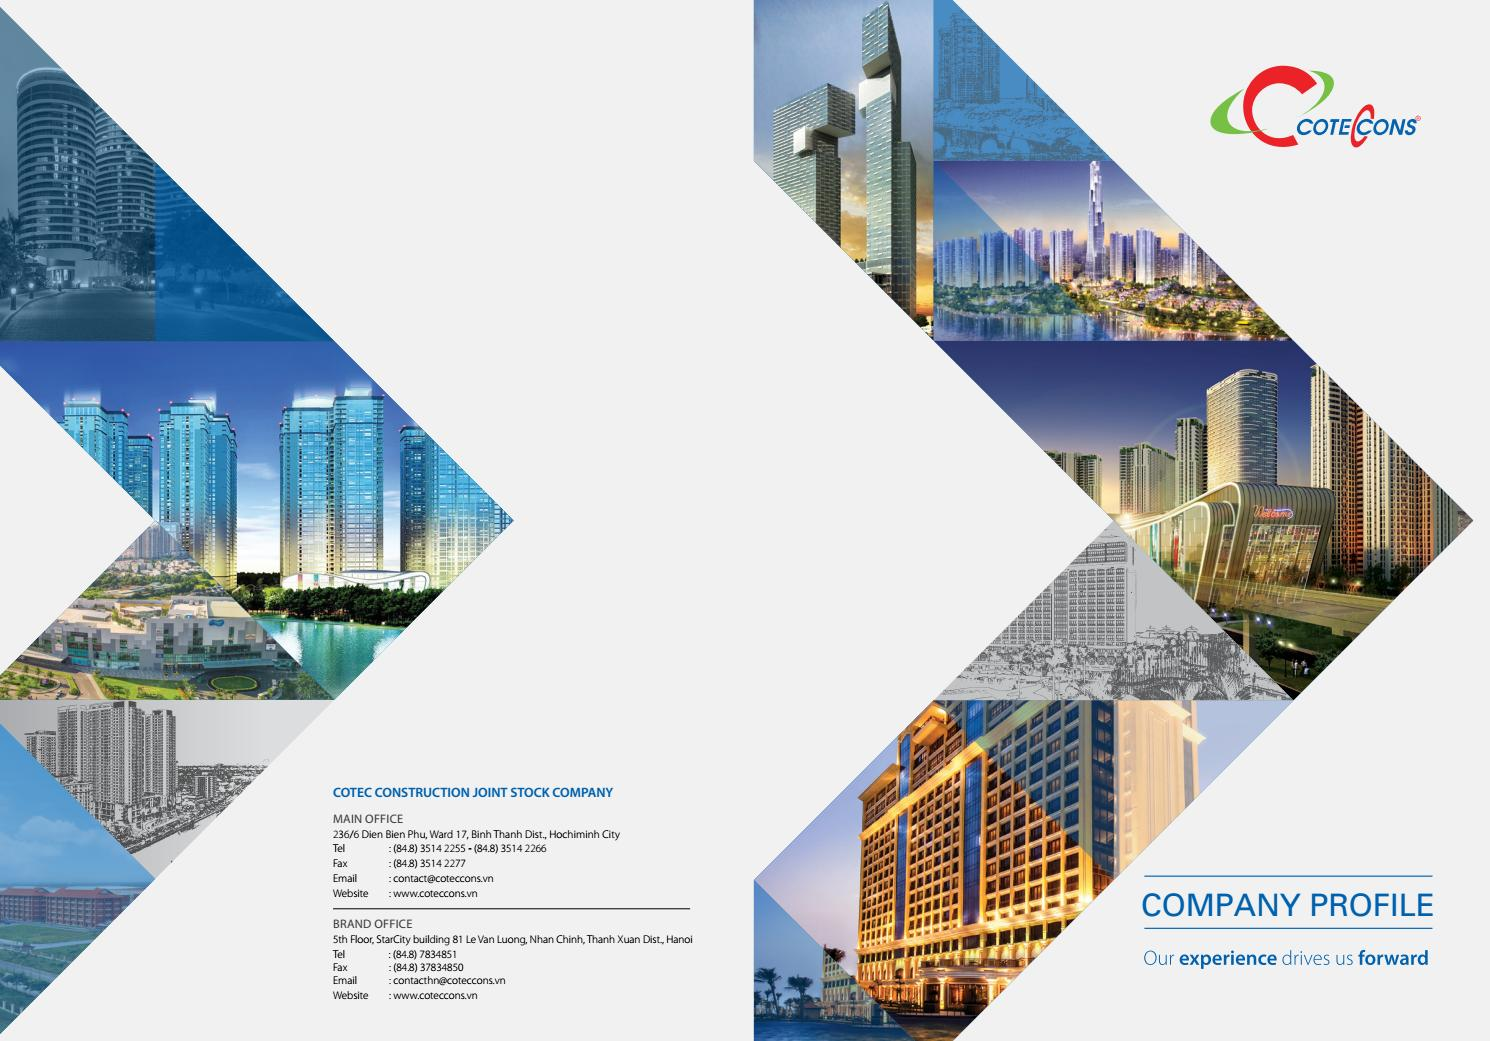 Company profile coteccons by lebrand issuu for Information technology company profile template